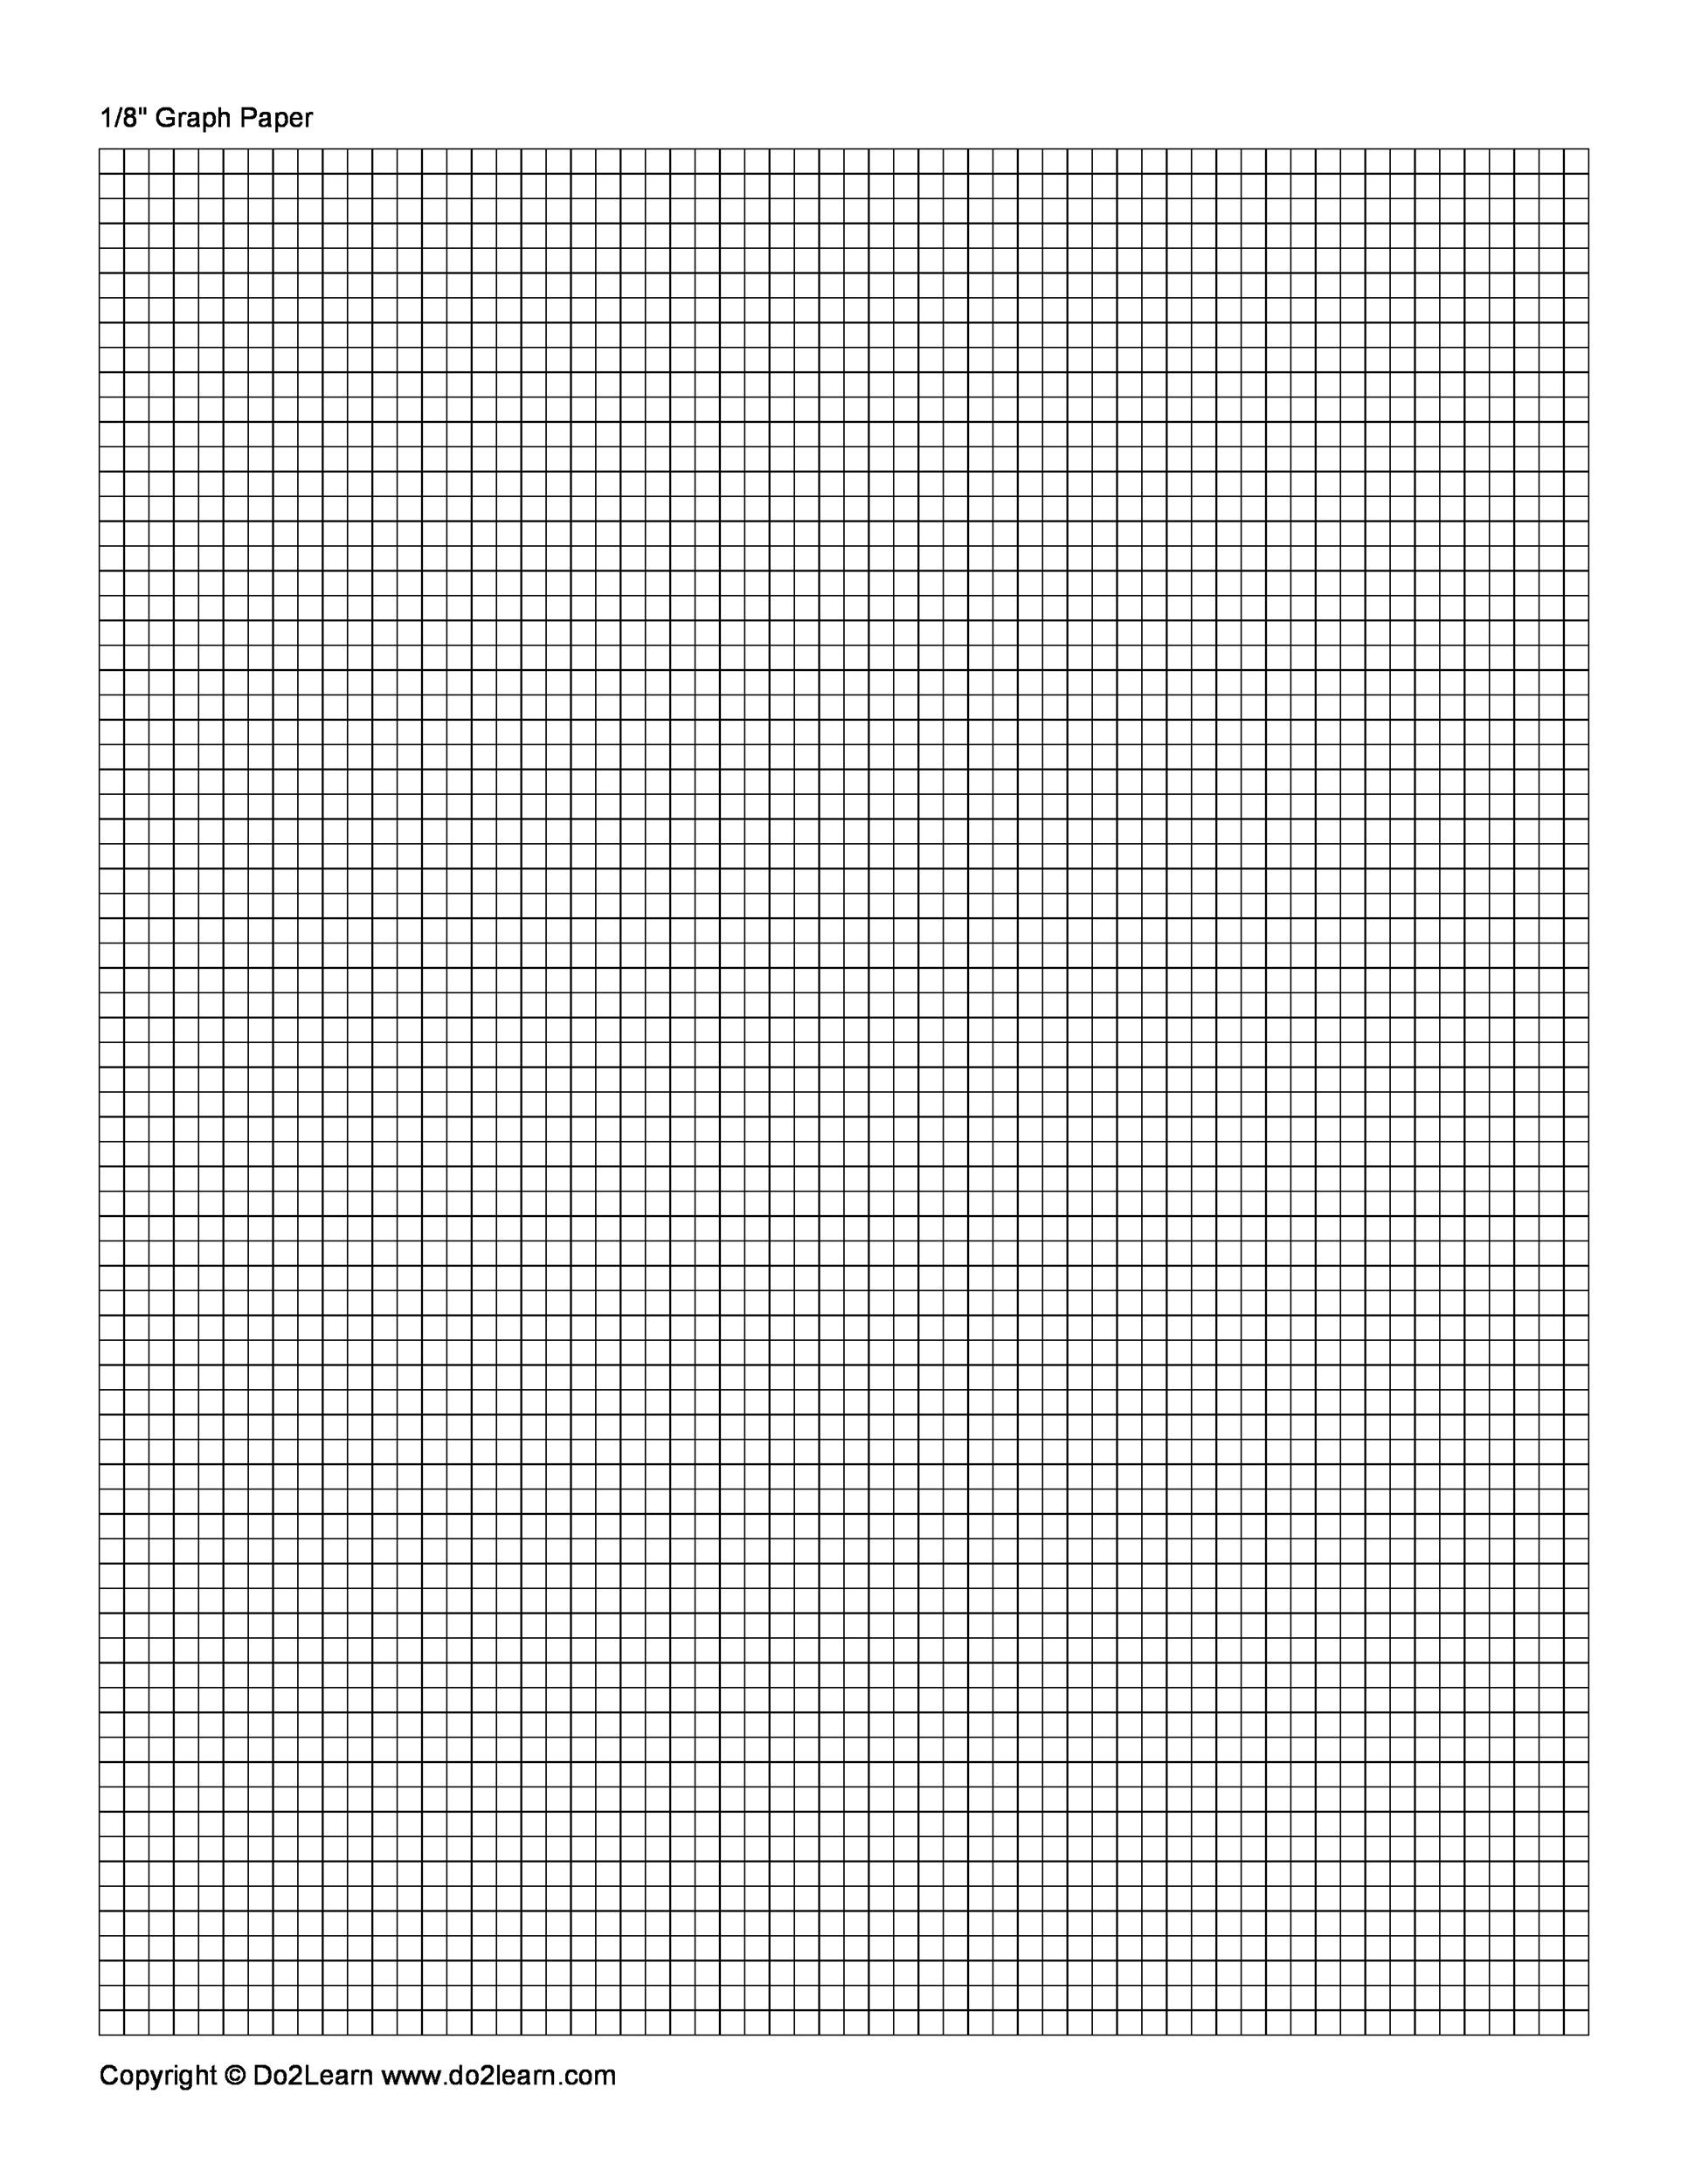 Printable Graph Paper Template 01  Printable Loose Leaf Paper